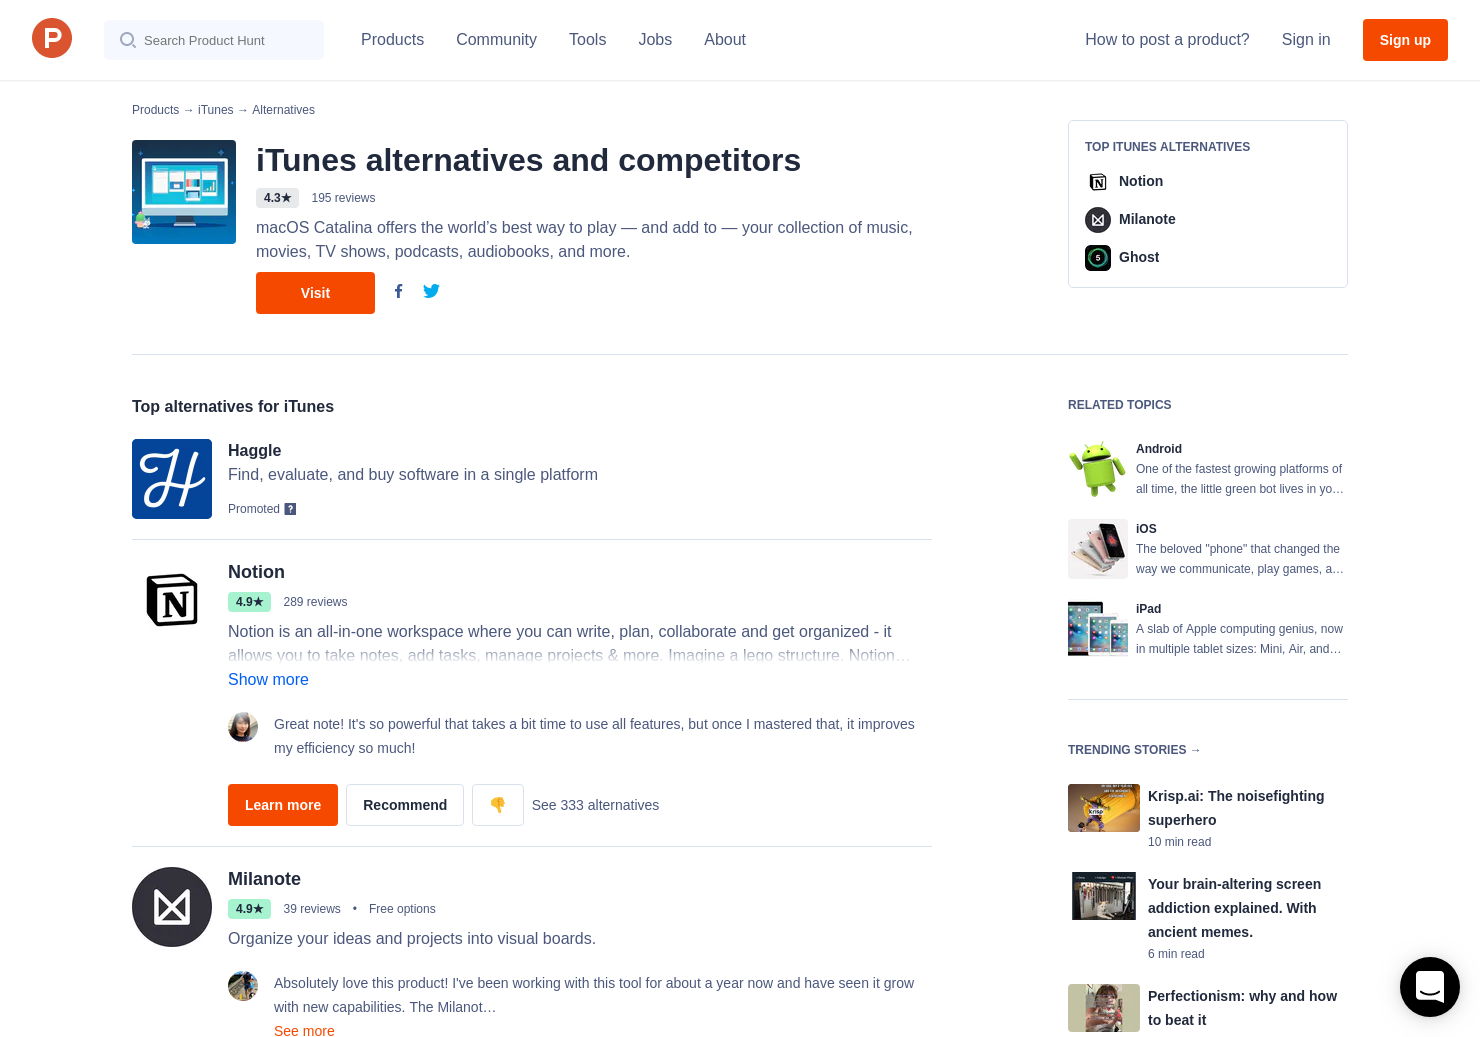 35 Alternatives to Paper 3 0 for iPhone, iPad | Product Hunt